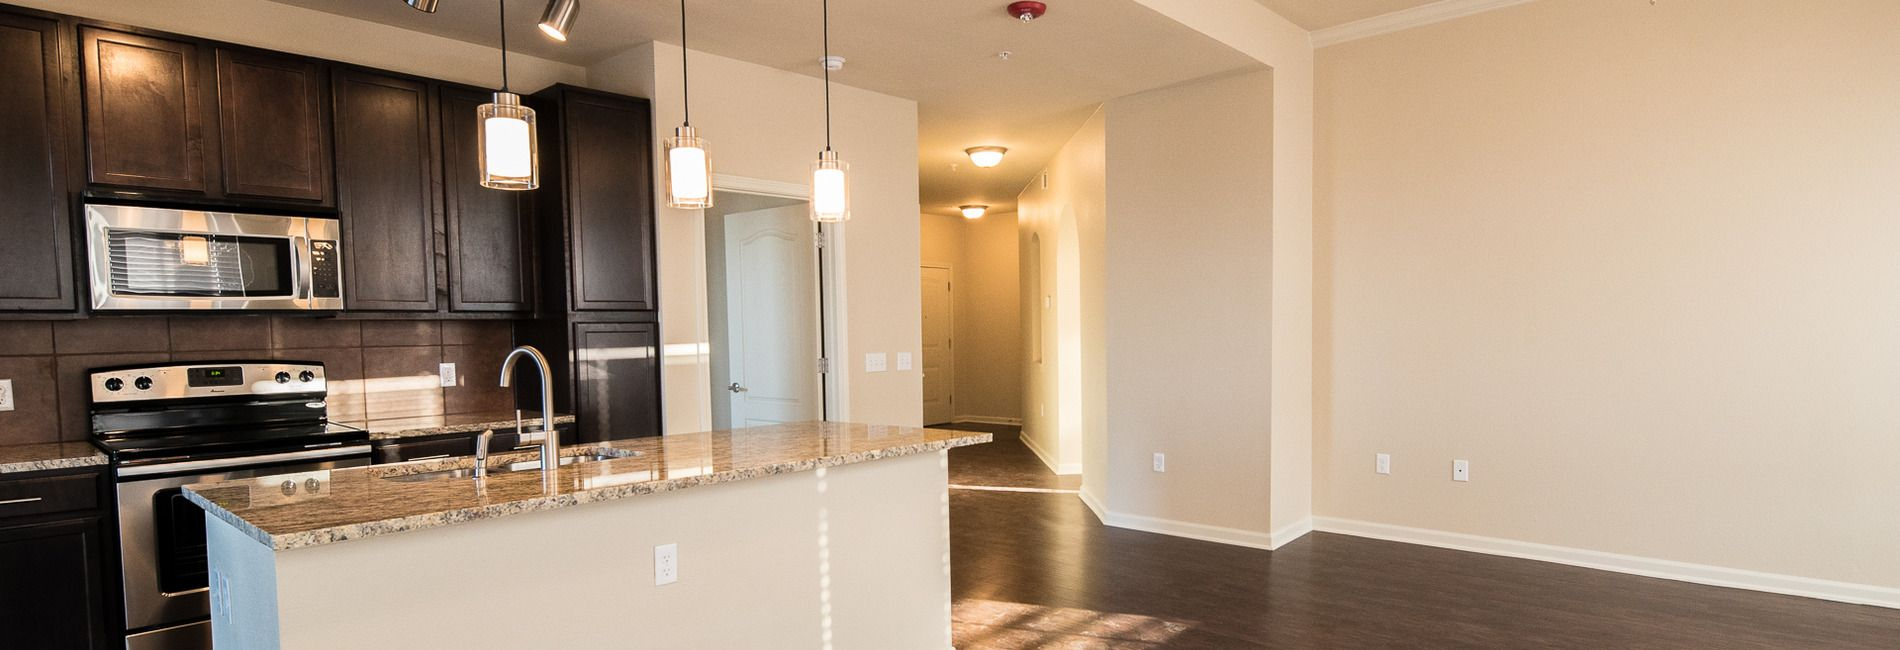 Apartments For Rent In El Paso Tx Quest On Edgemere Apartments For Rent Quest Apartments Apartment